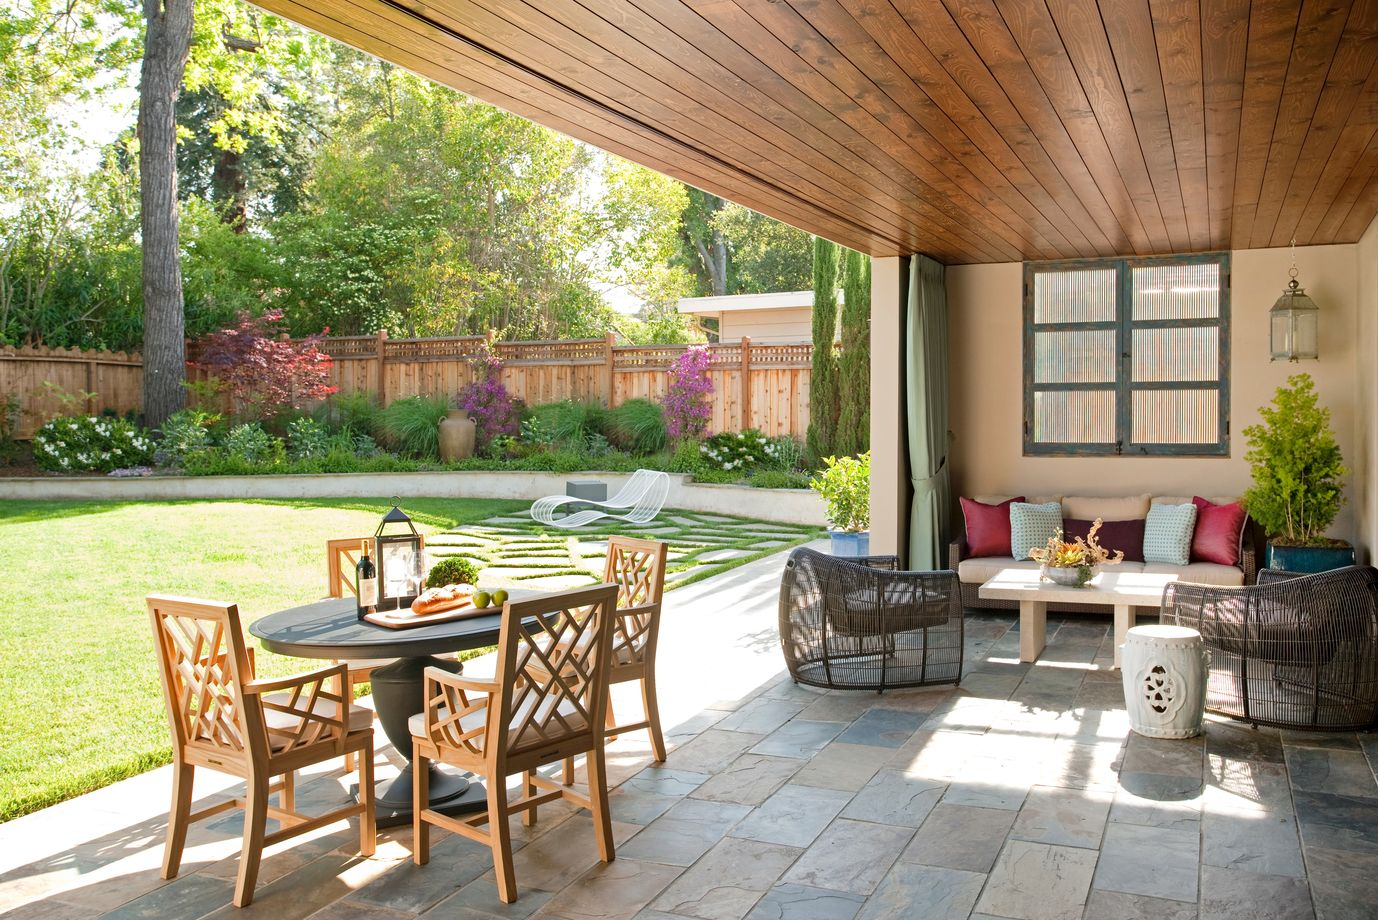 Patio Ideas To Make Your Backyard The Ideal Summer Escape